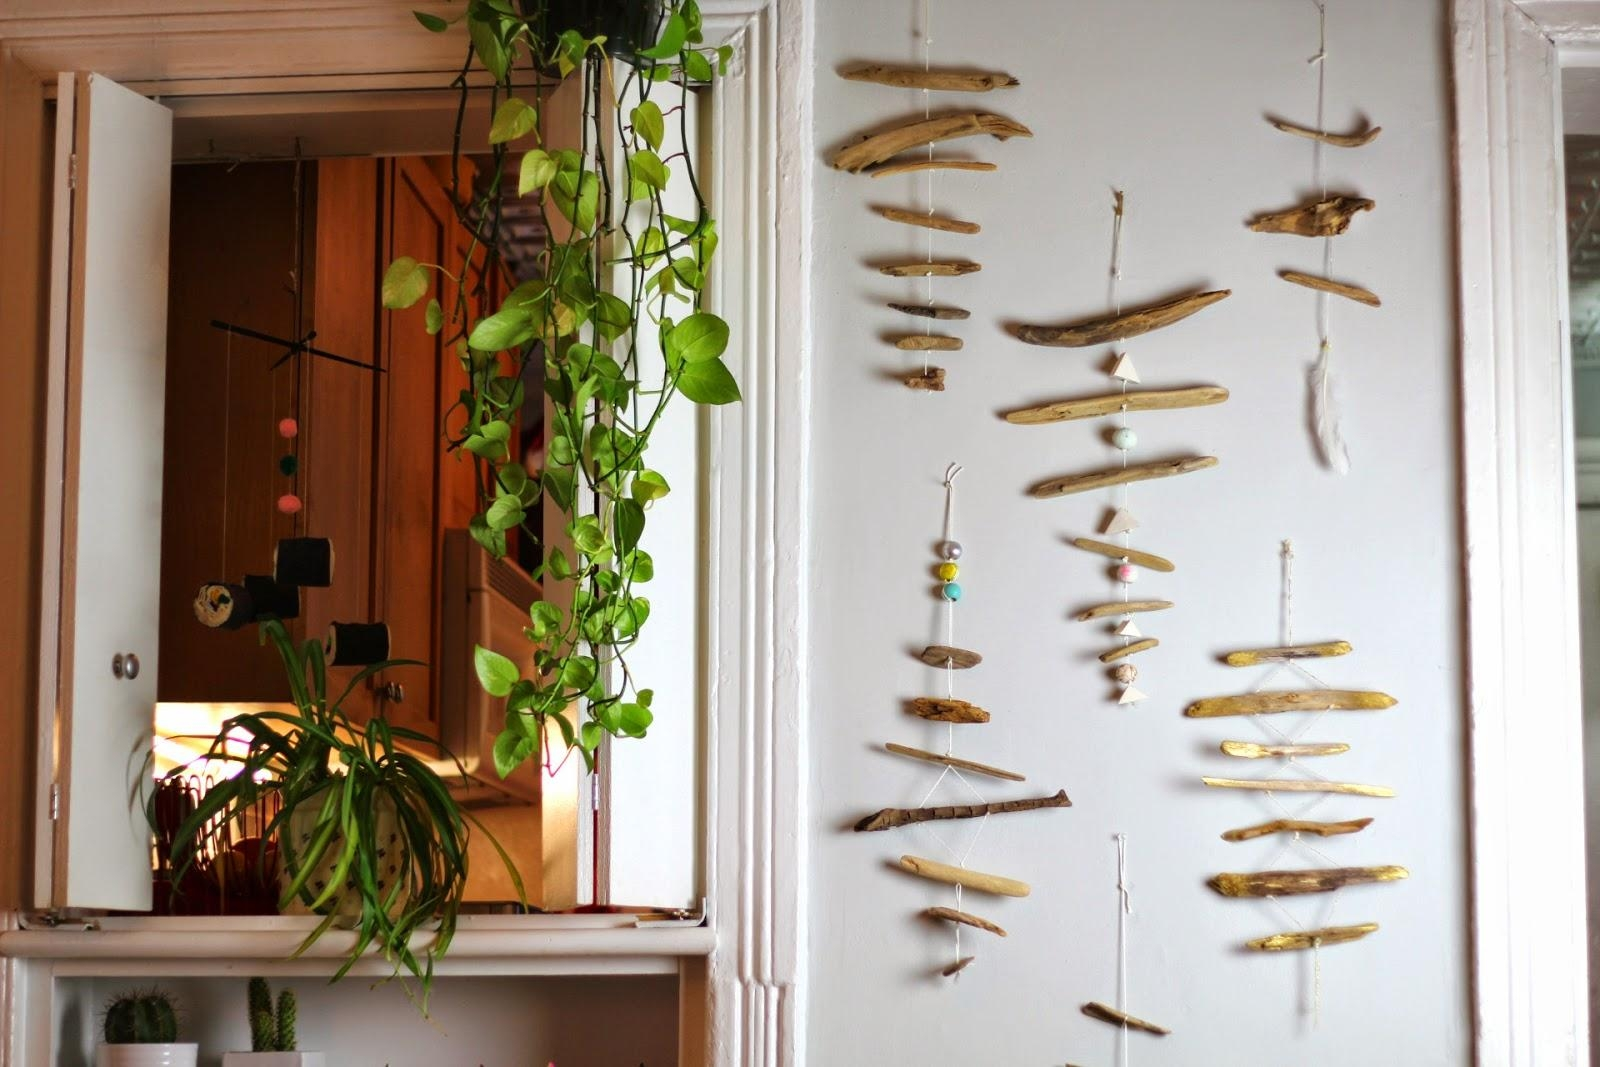 Decosee: Driftwood Wall Art Intended For Driftwood Wall Art (Image 3 of 20)